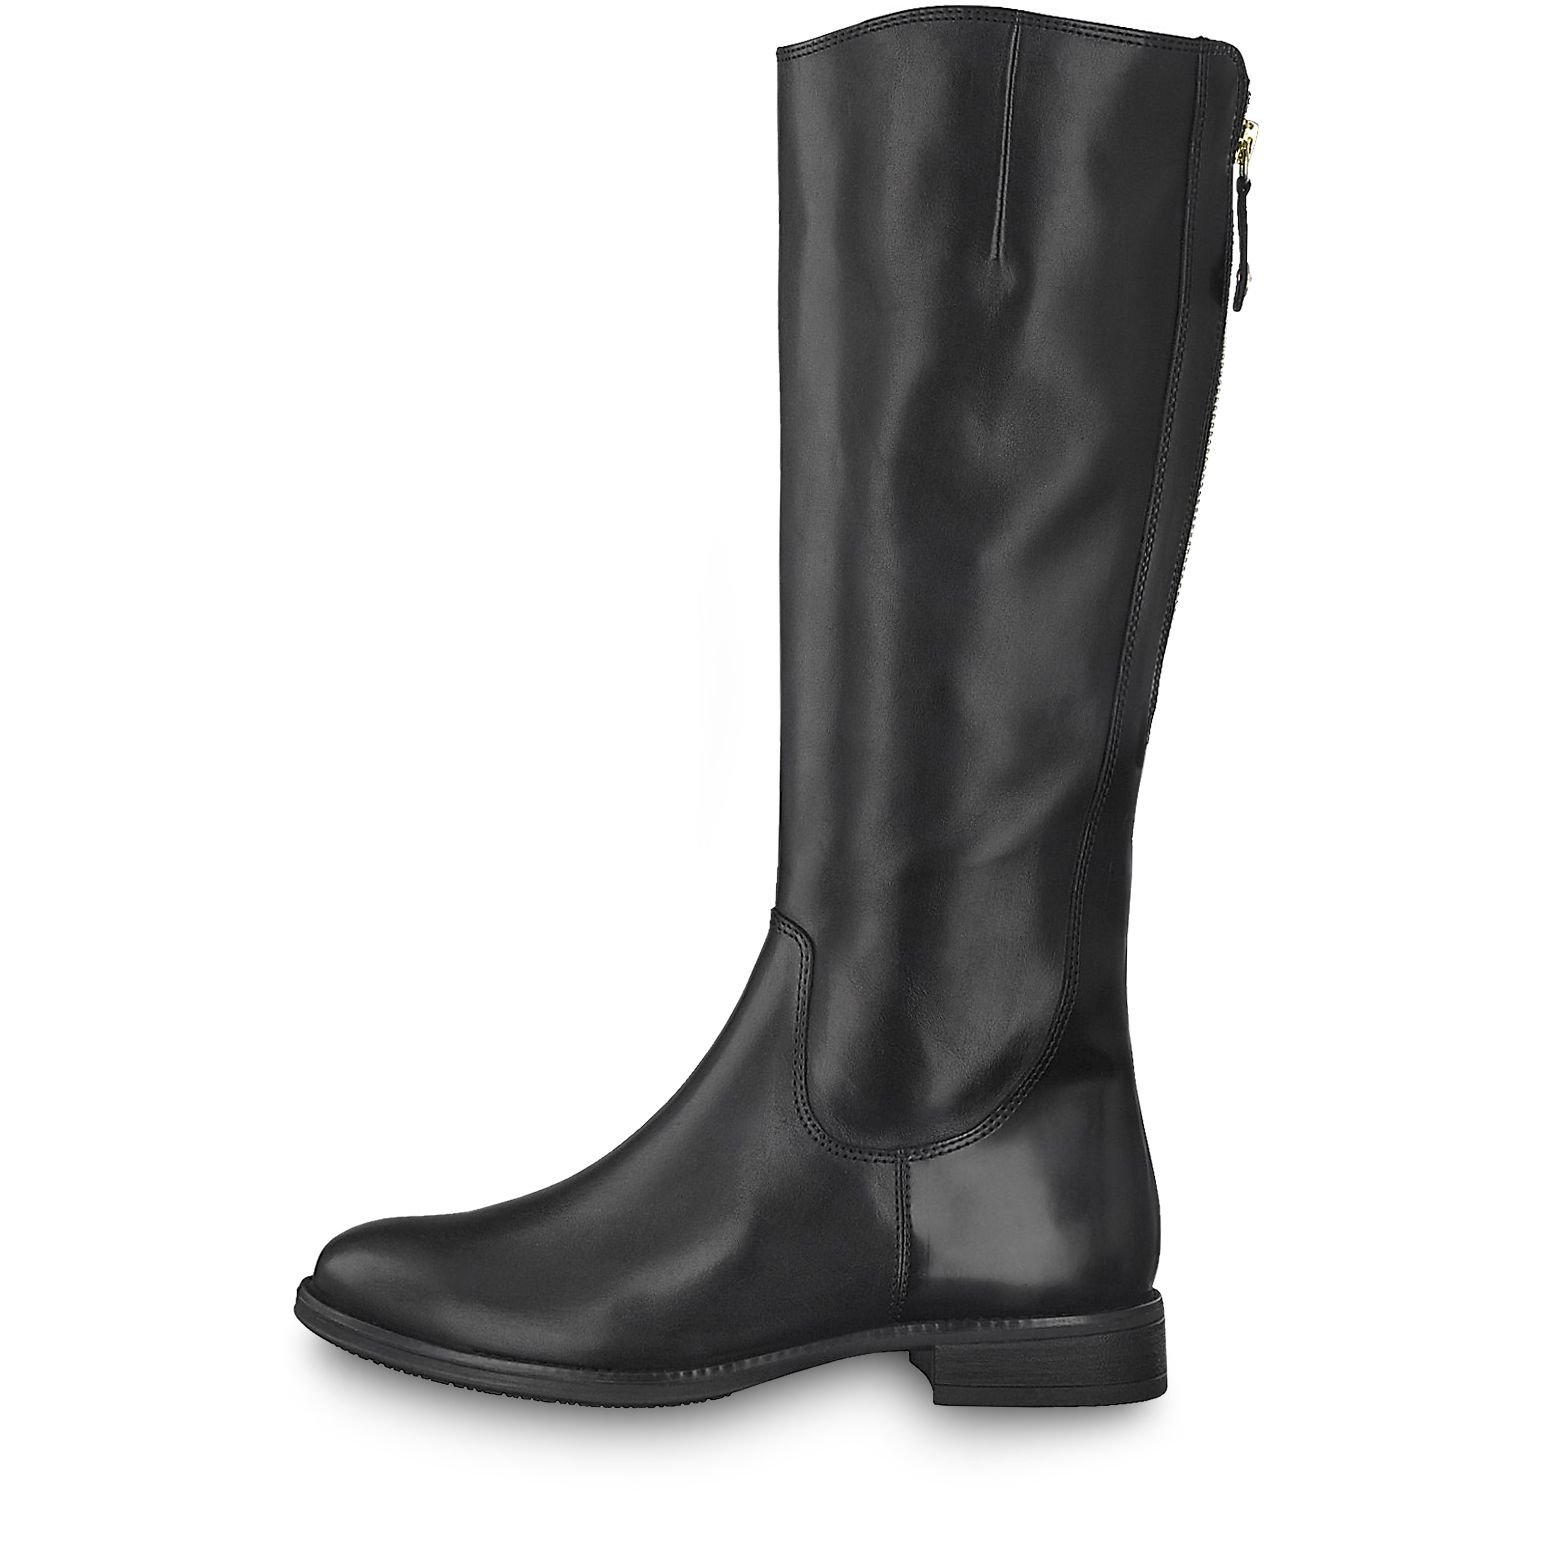 Leather Boots 1-1-25504-29: Buy Tamaris